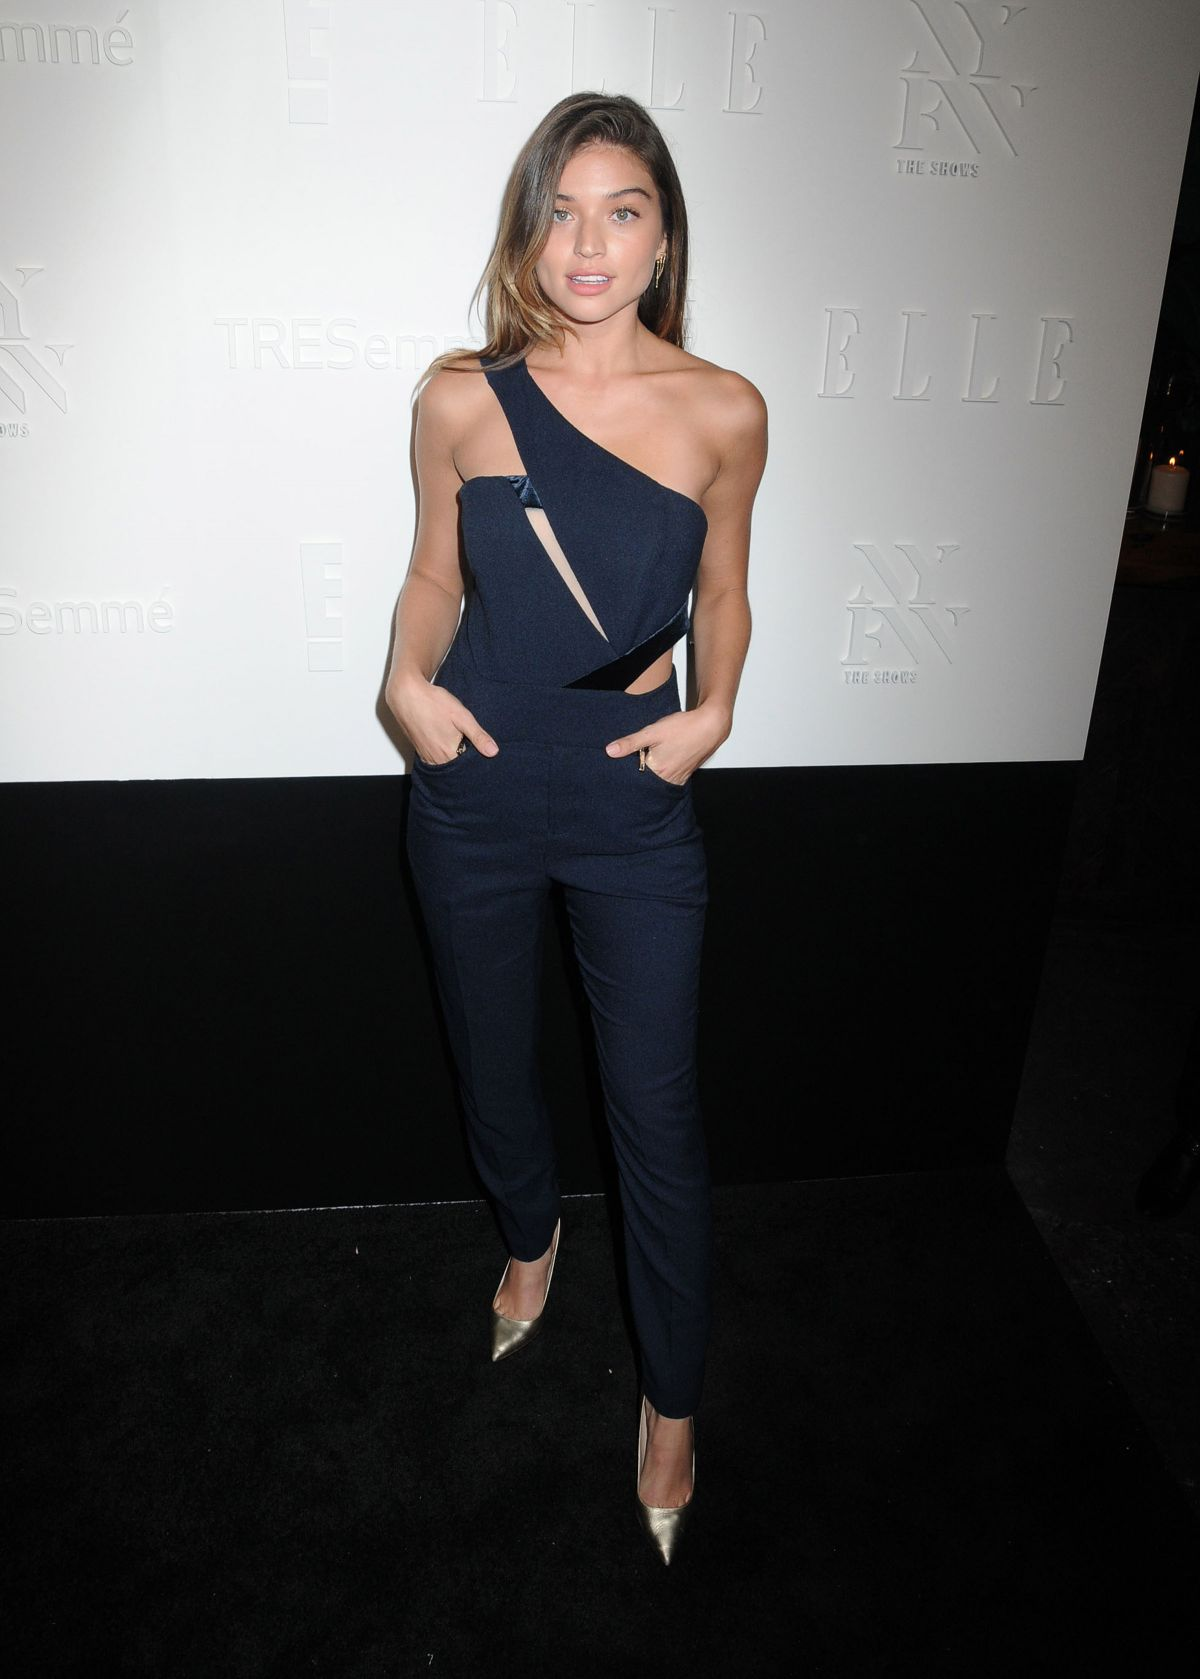 DANIELA LOPEZ at E!, Elle & Img Host New York Fashion Week Kickoff Party 09/06/2017